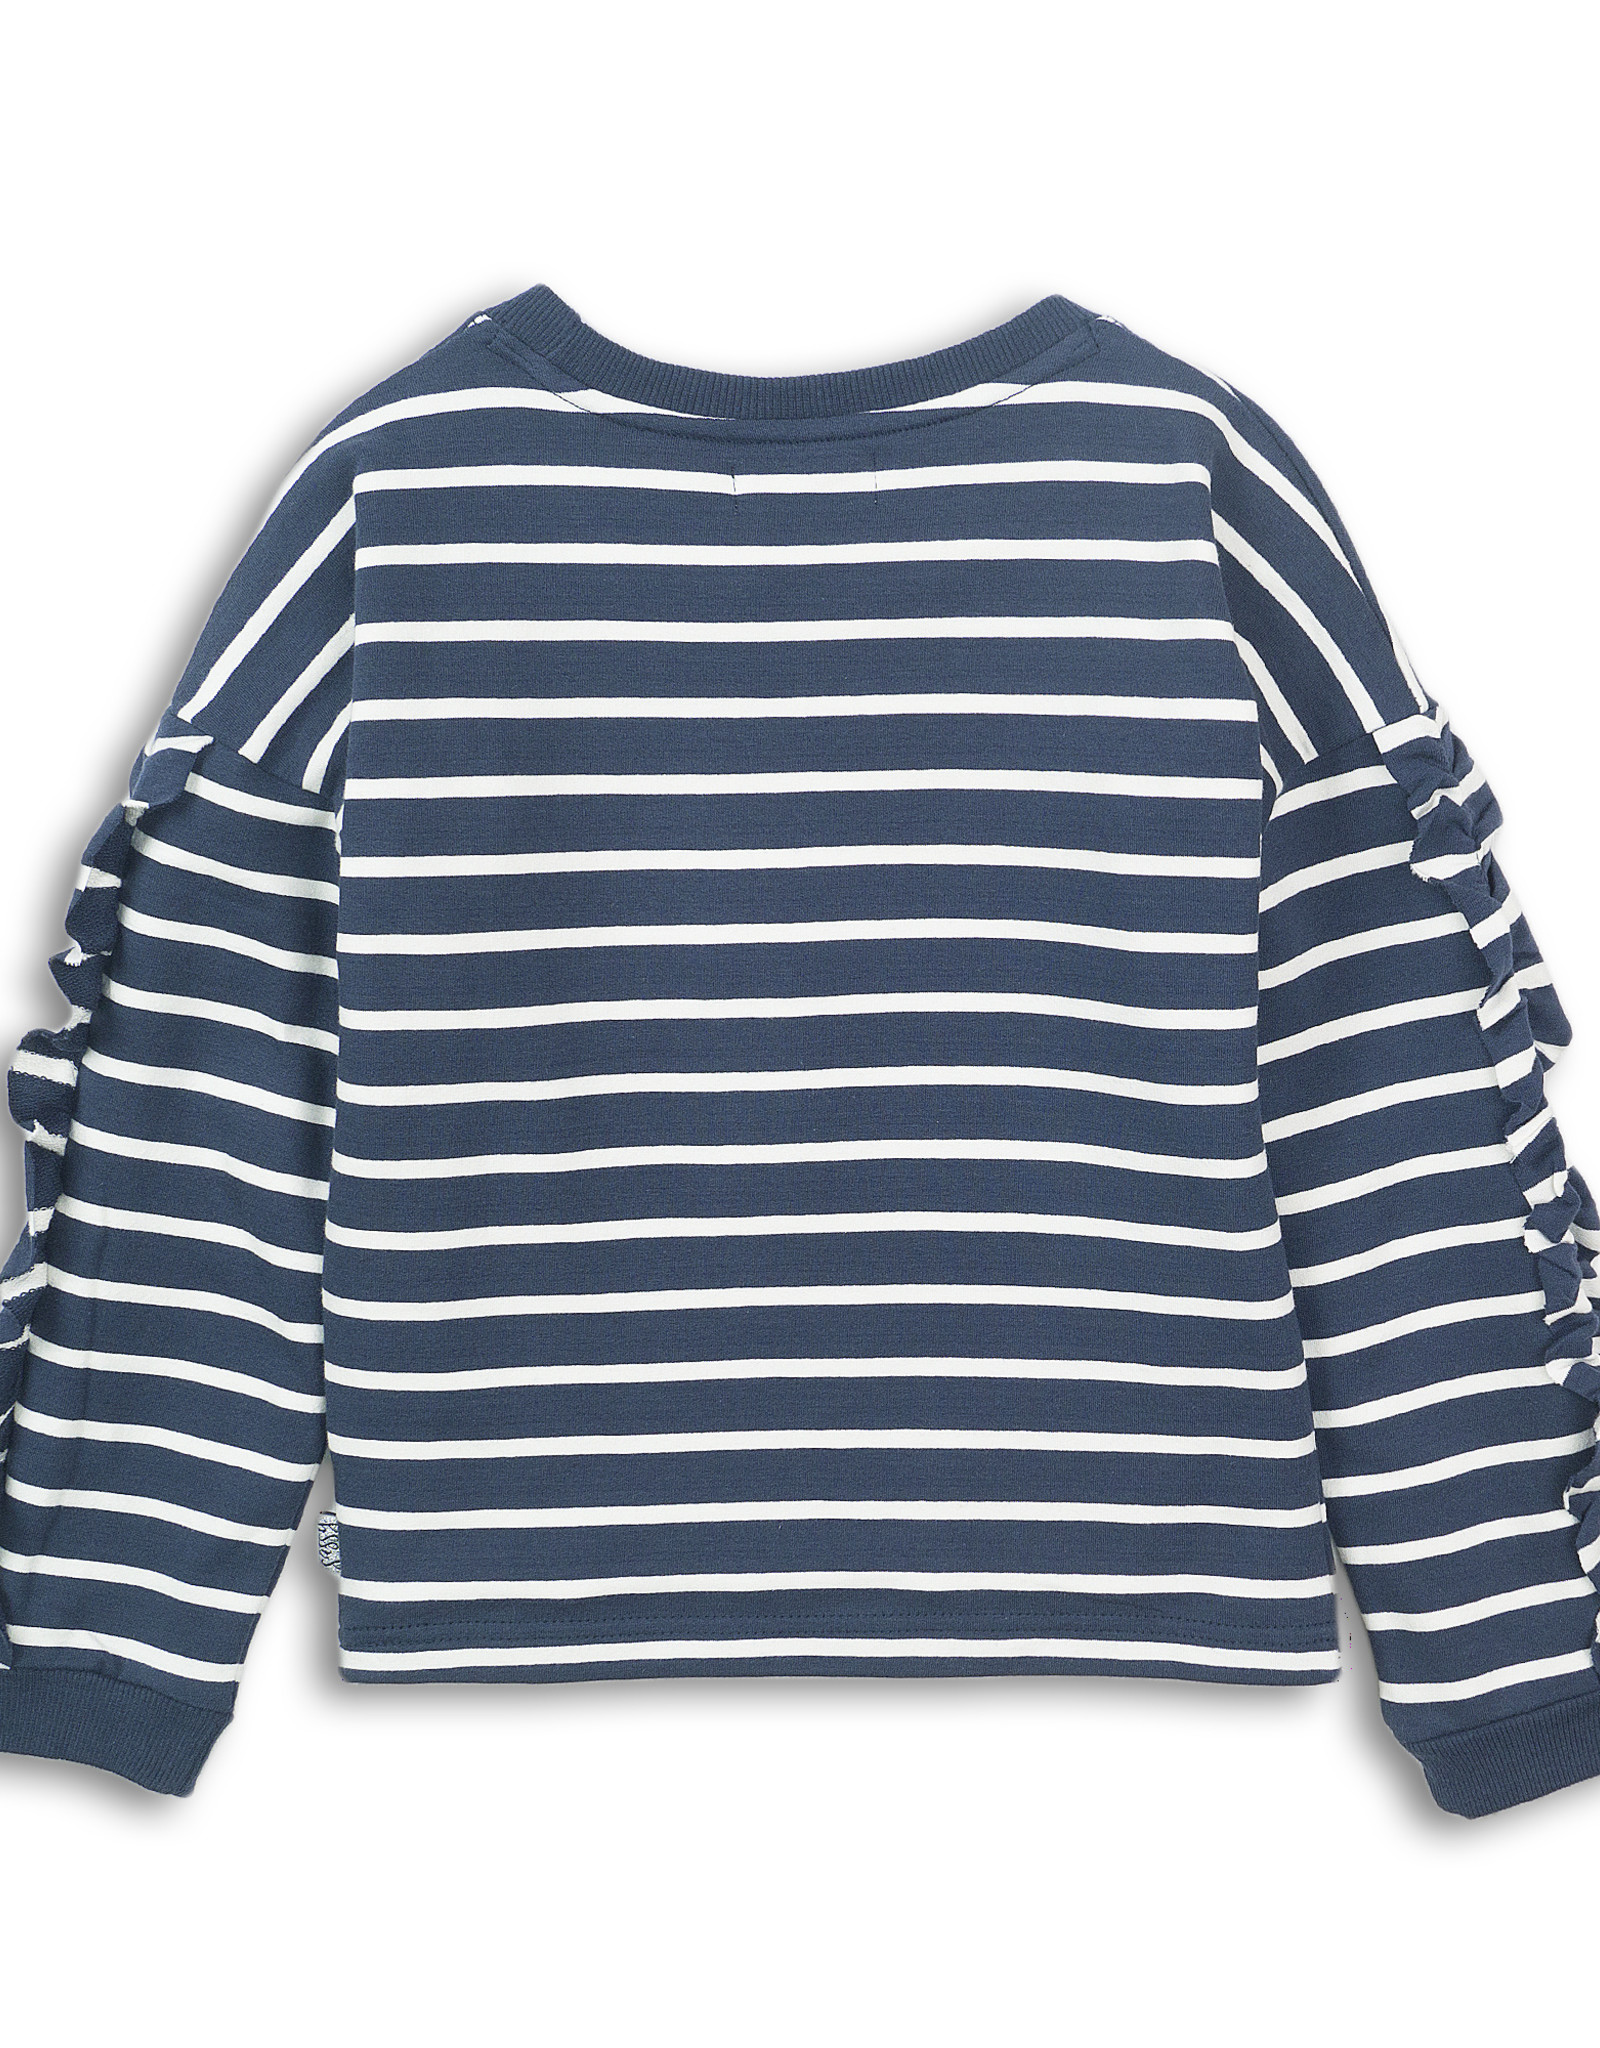 DJ Dutchjeans DJ sweater 36041 navy